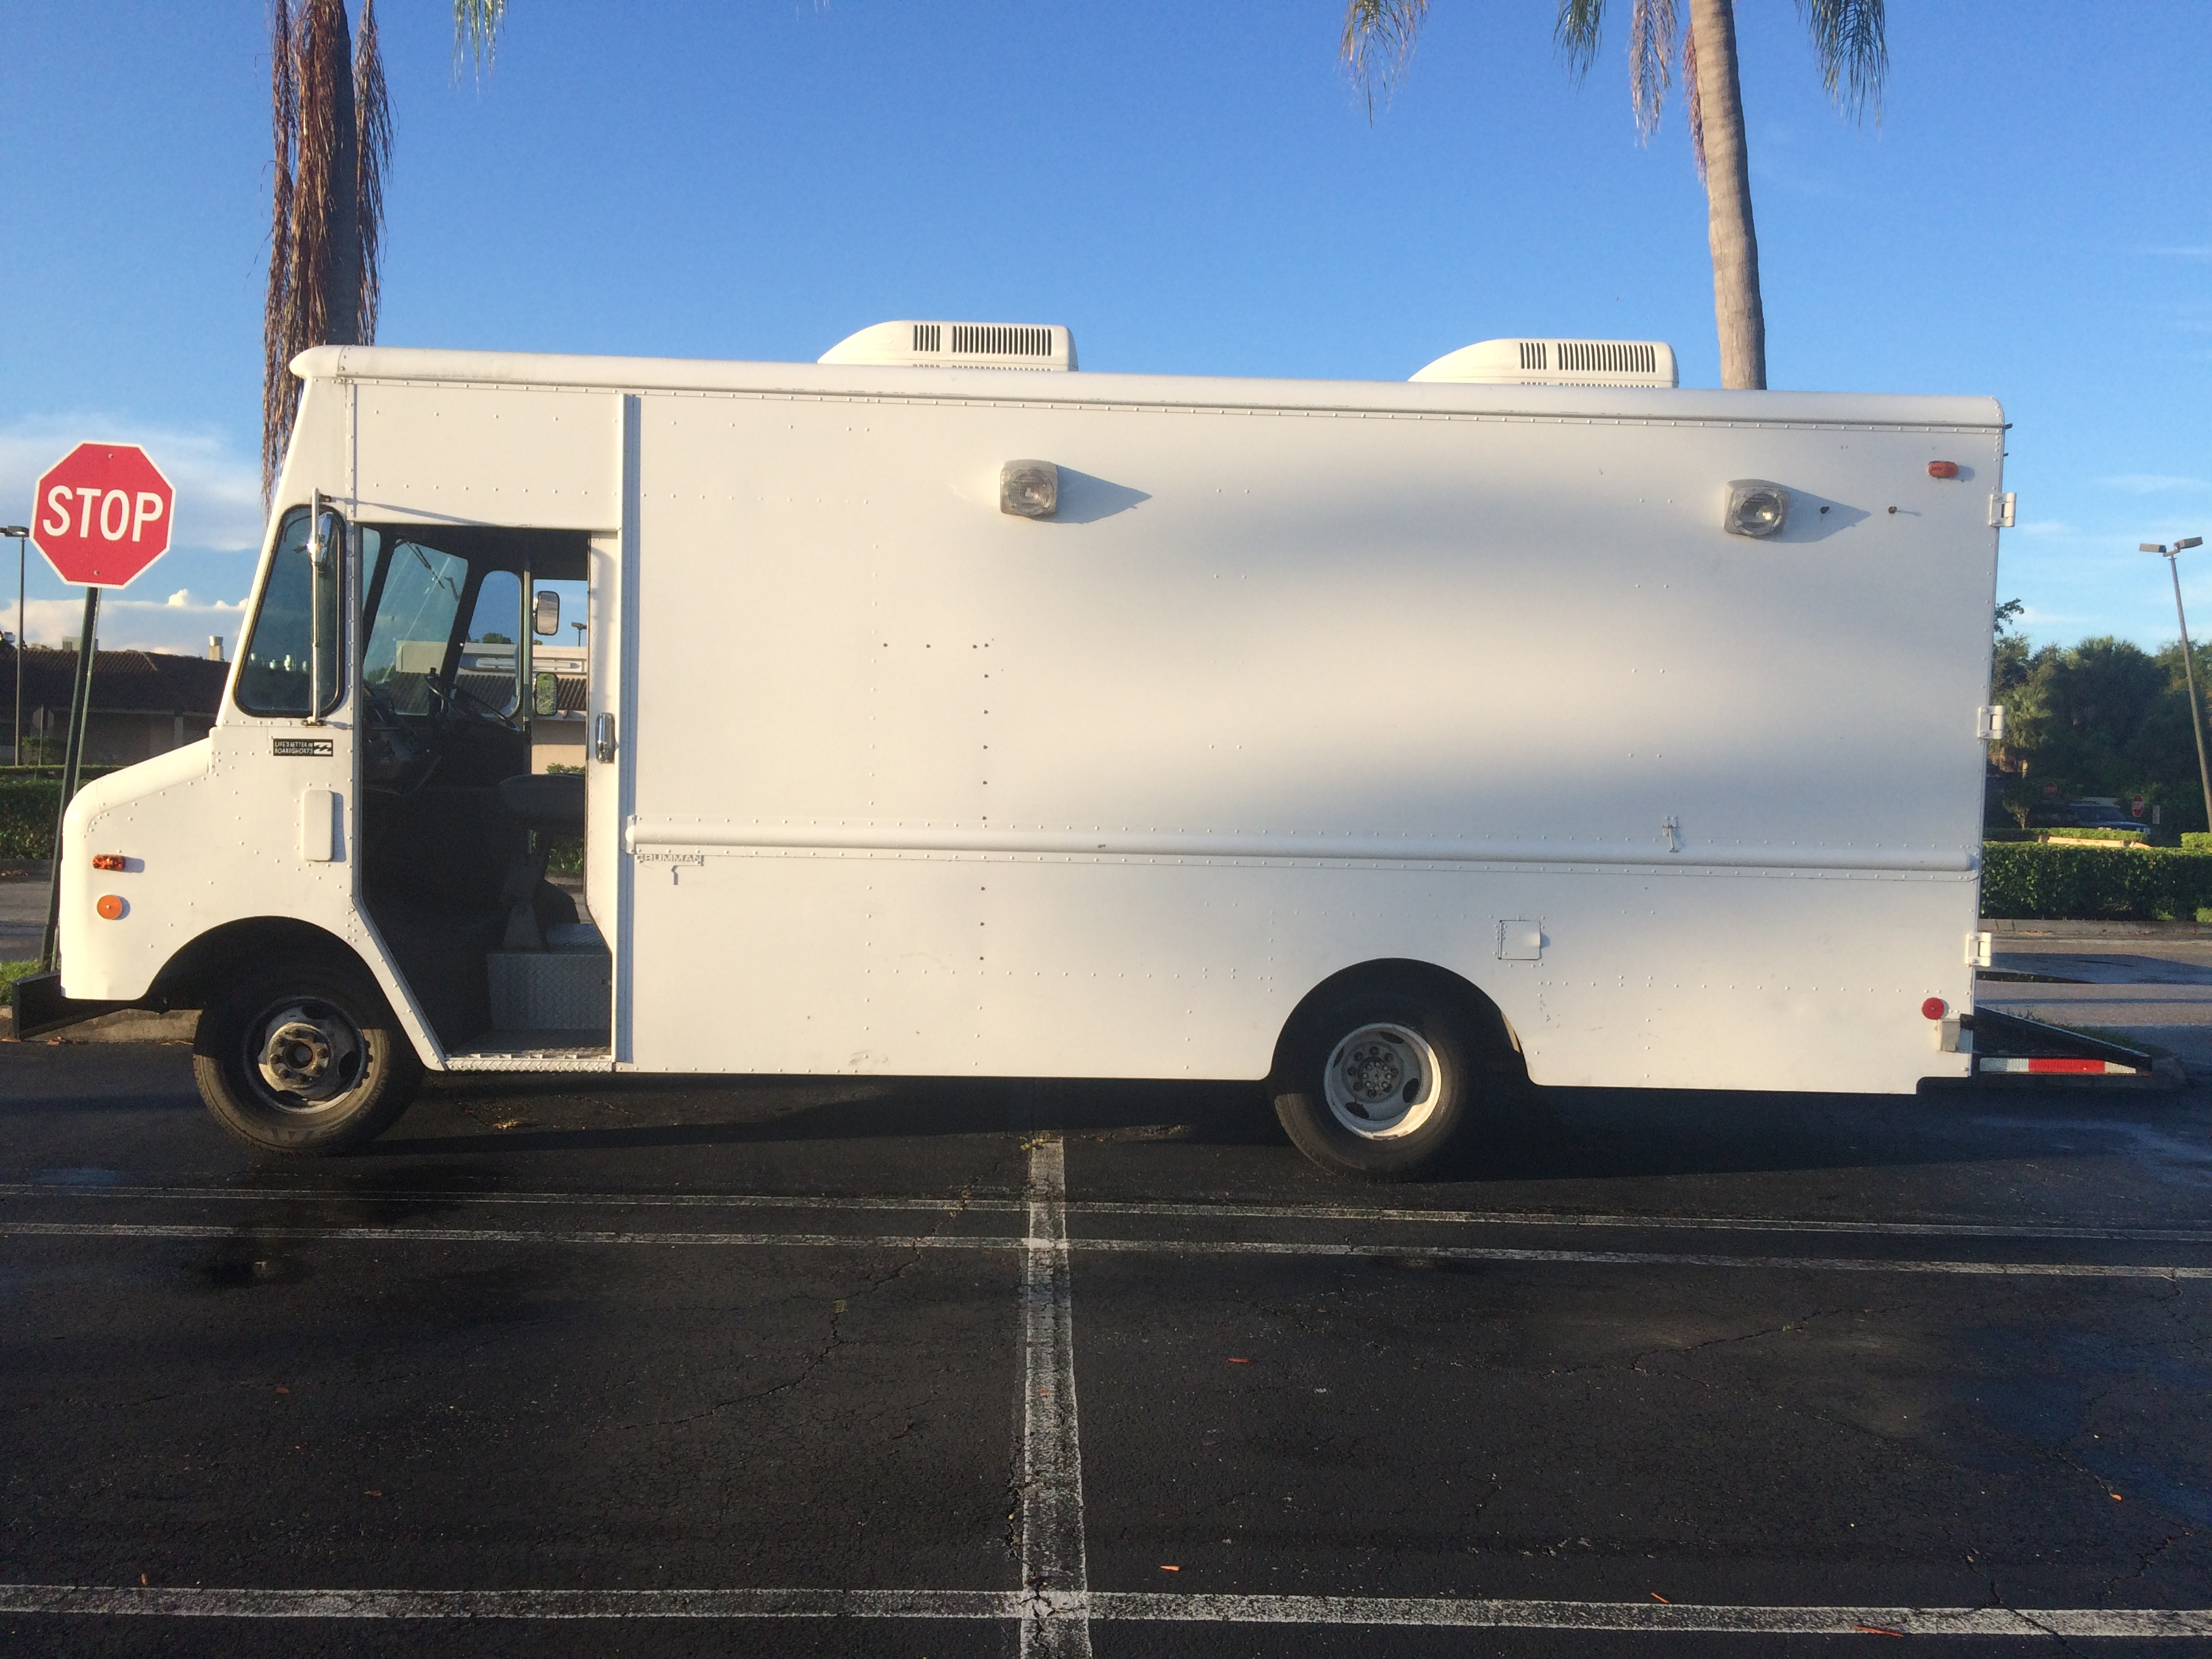 "OUR NEW SURF TRUCK...""Dude Stokemeister"" - Thank you for your support!"